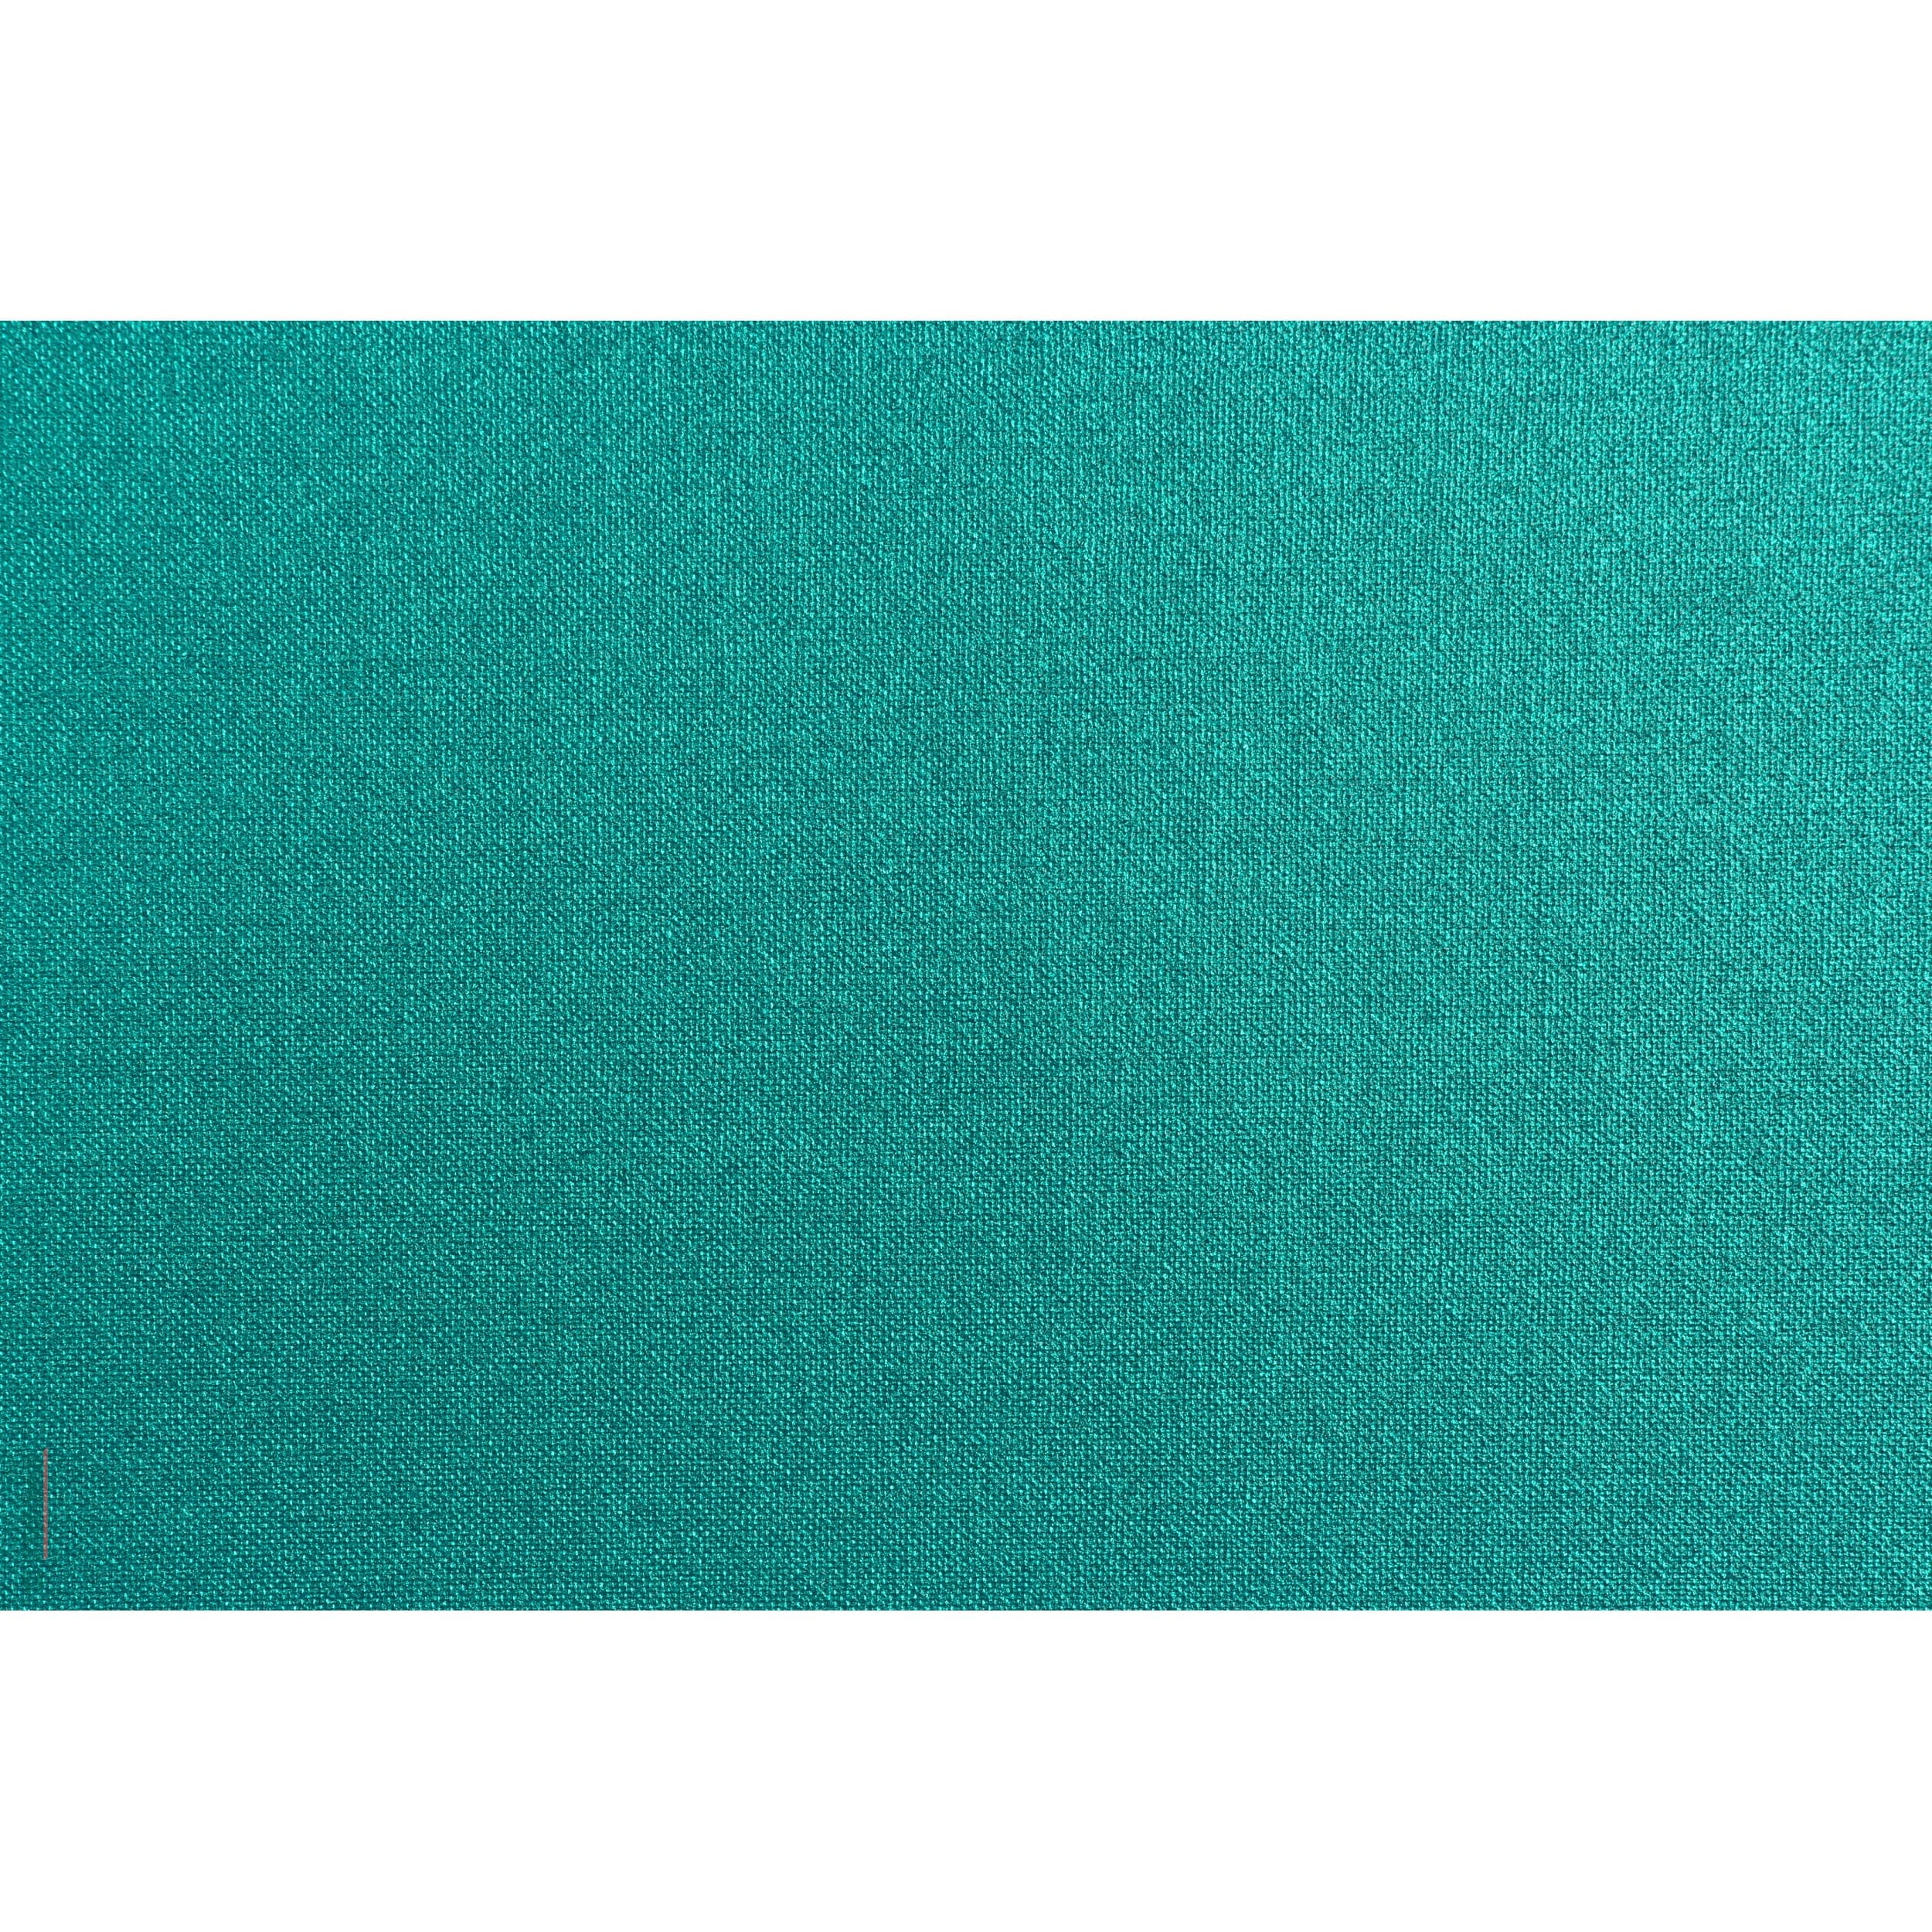 Book Cover Material Suppliers : English buckram neon binding cloth with coated surface